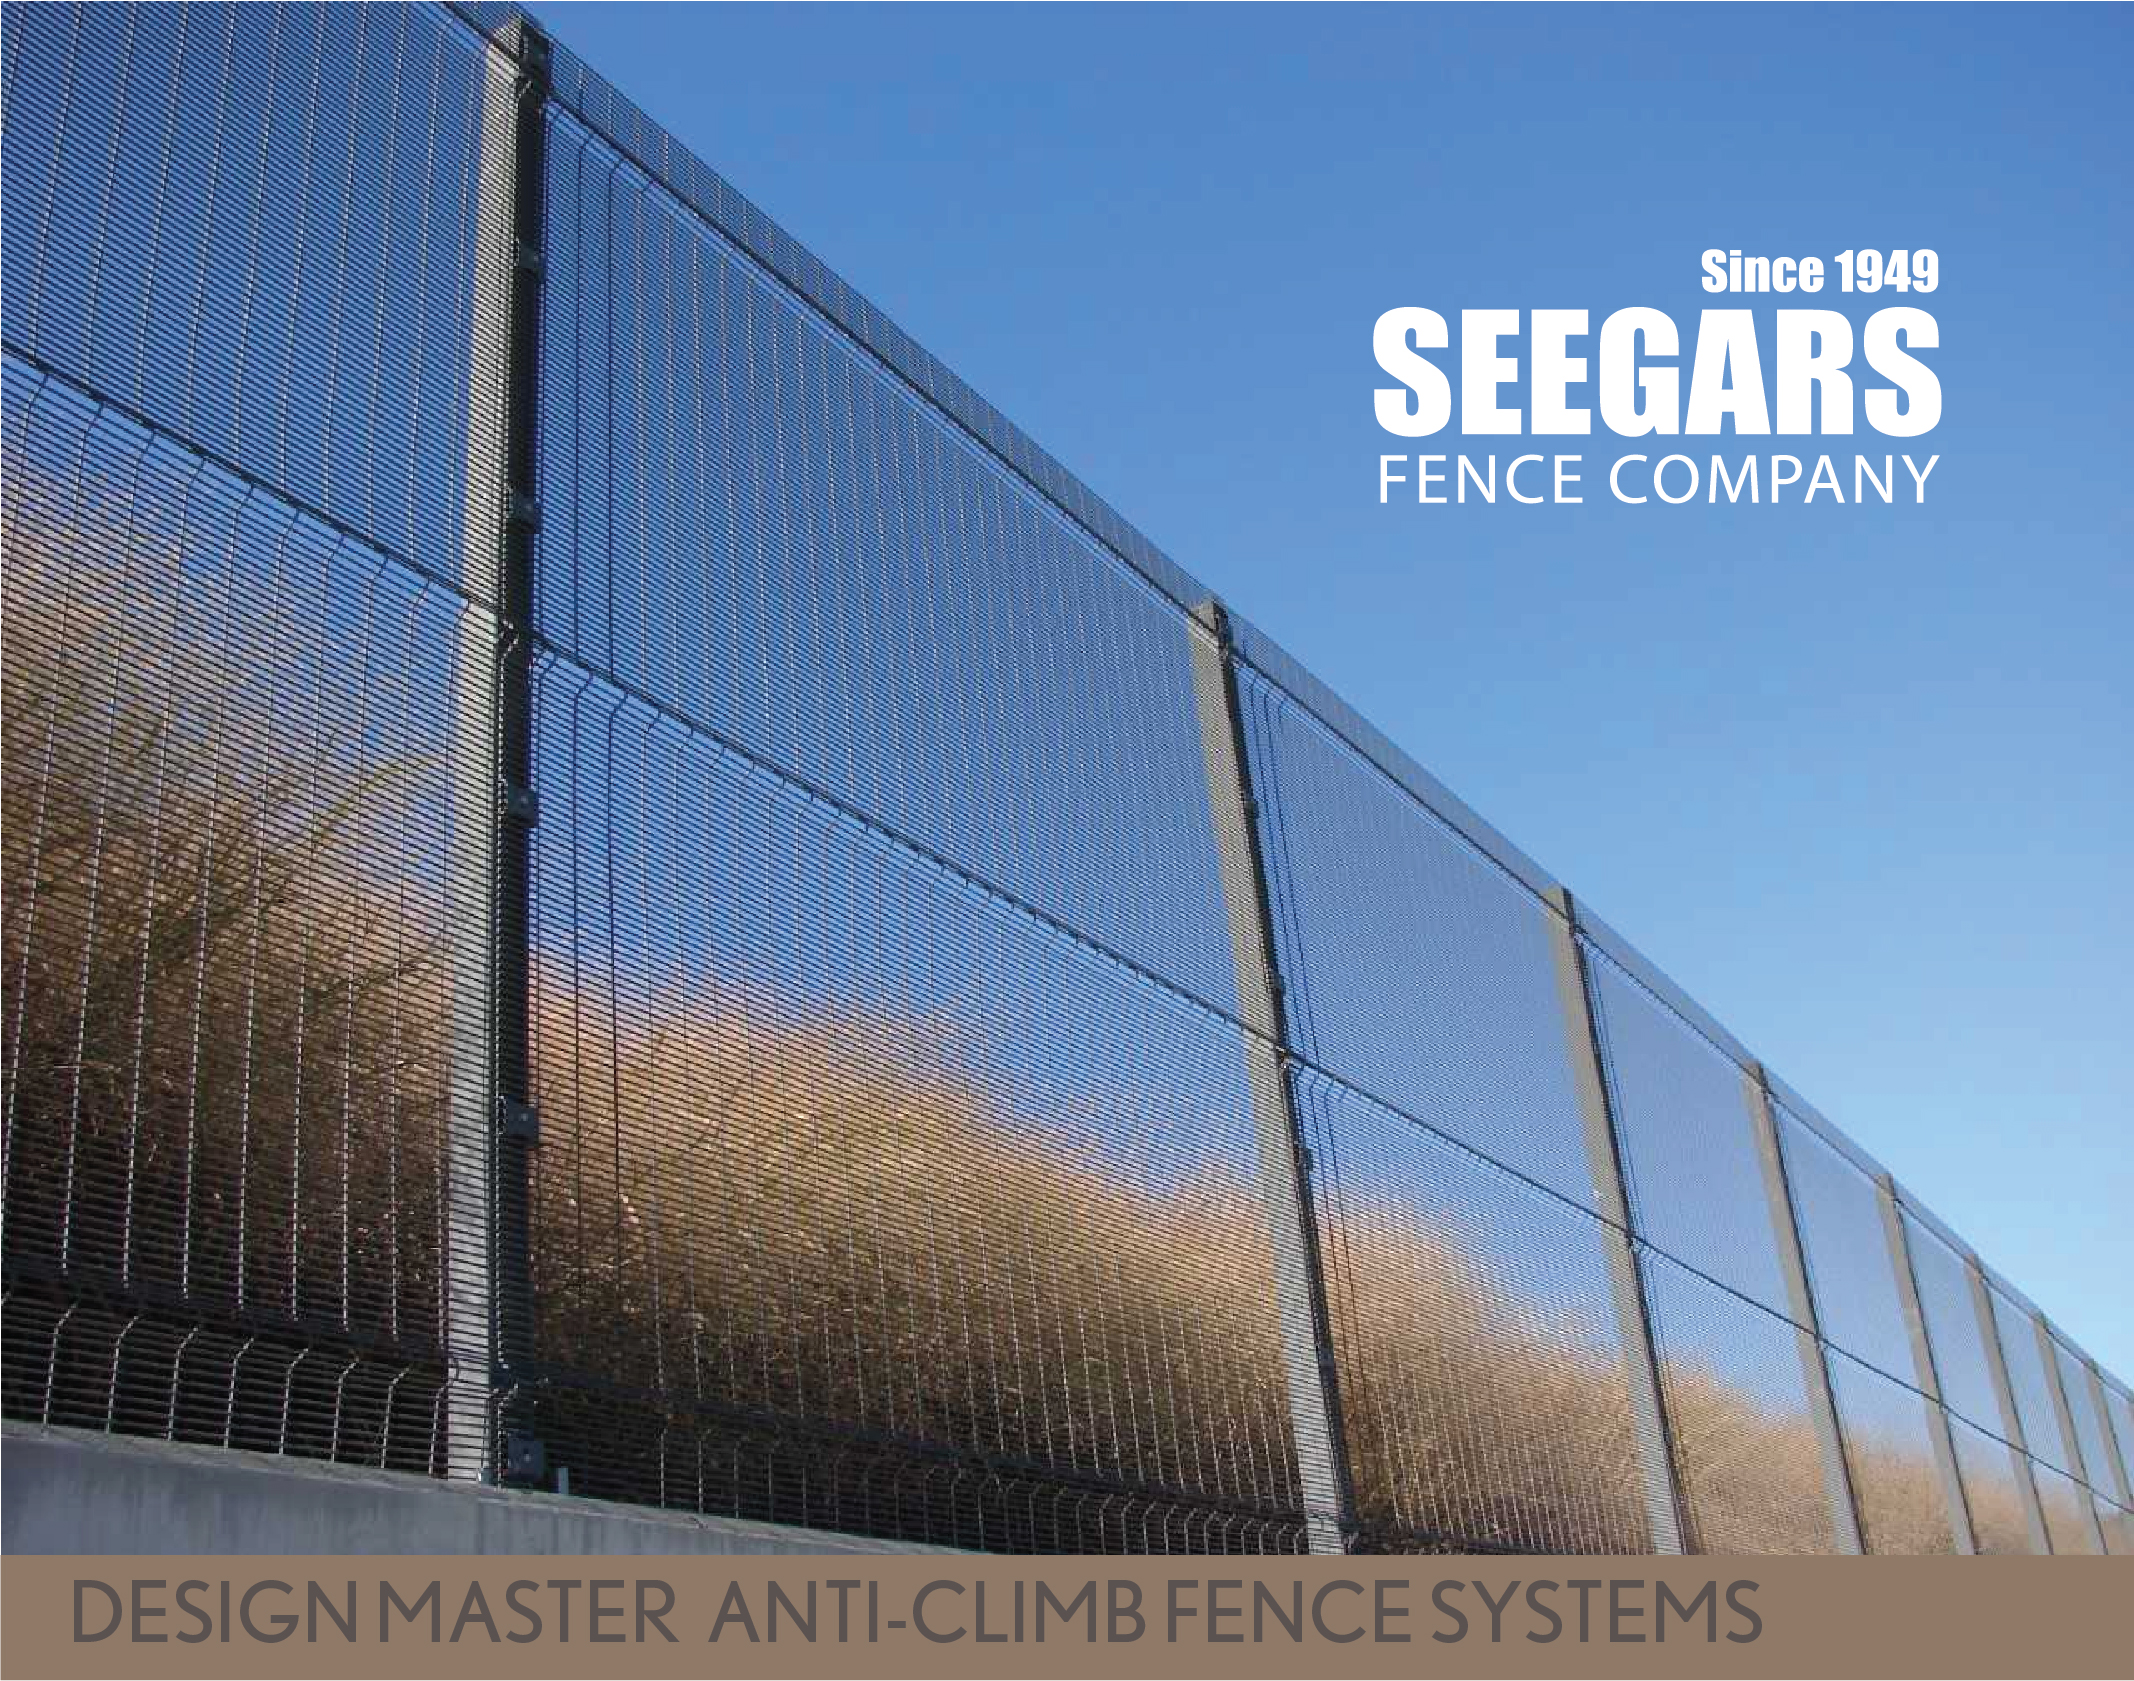 Highway Seegars Fence Company